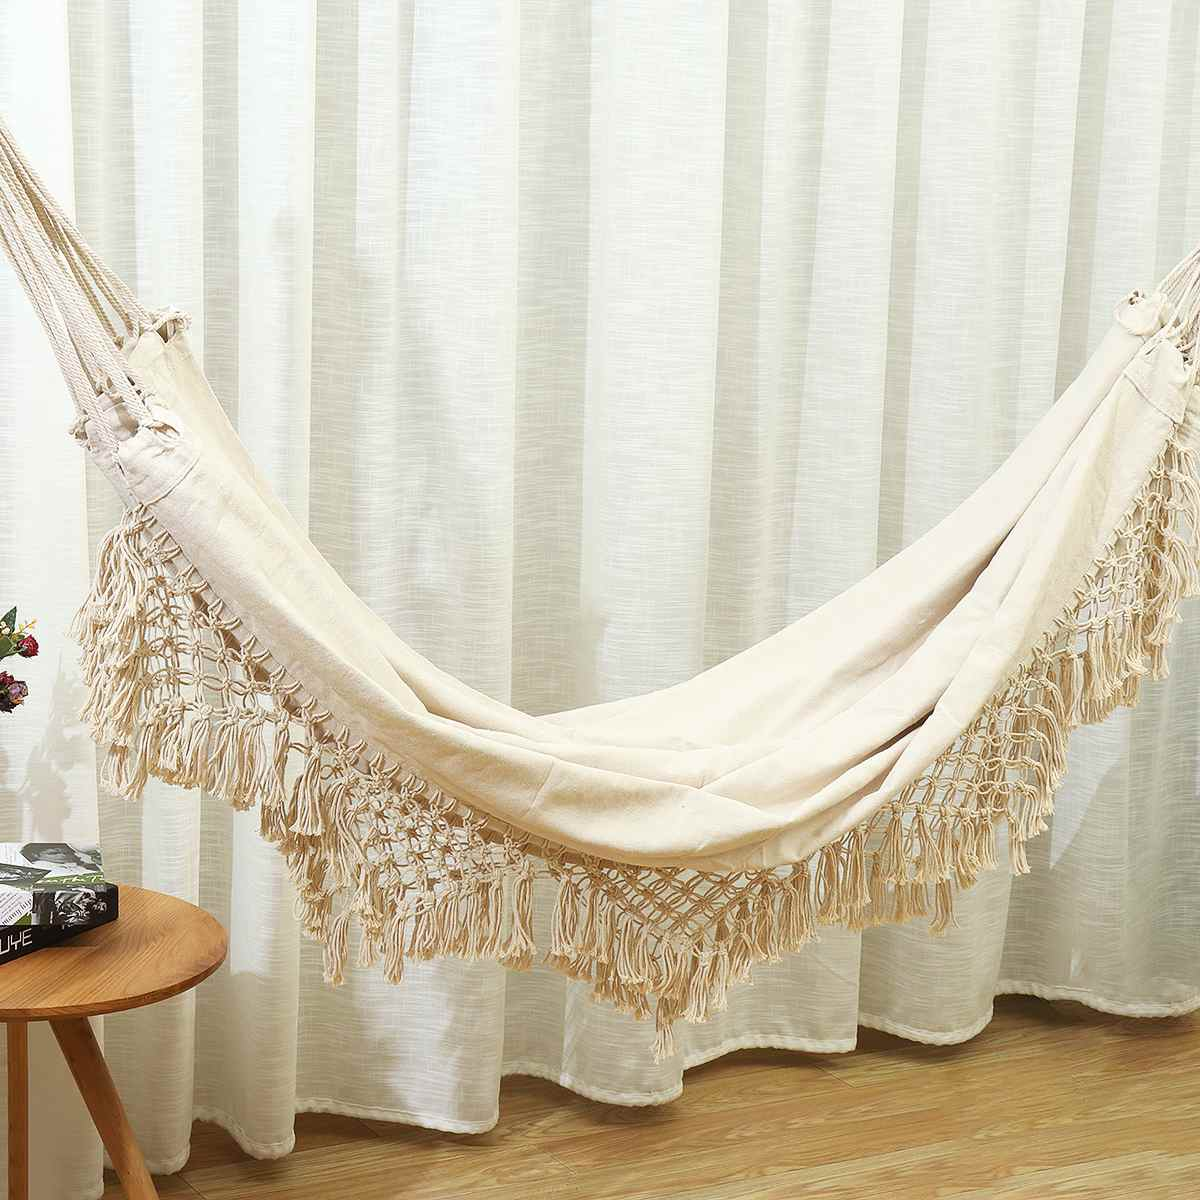 2 Person Hammock Large Brazilian Macrame Fringe Double Hammock Swing Net Chair Out/Indoor Hanging Hammock Swings